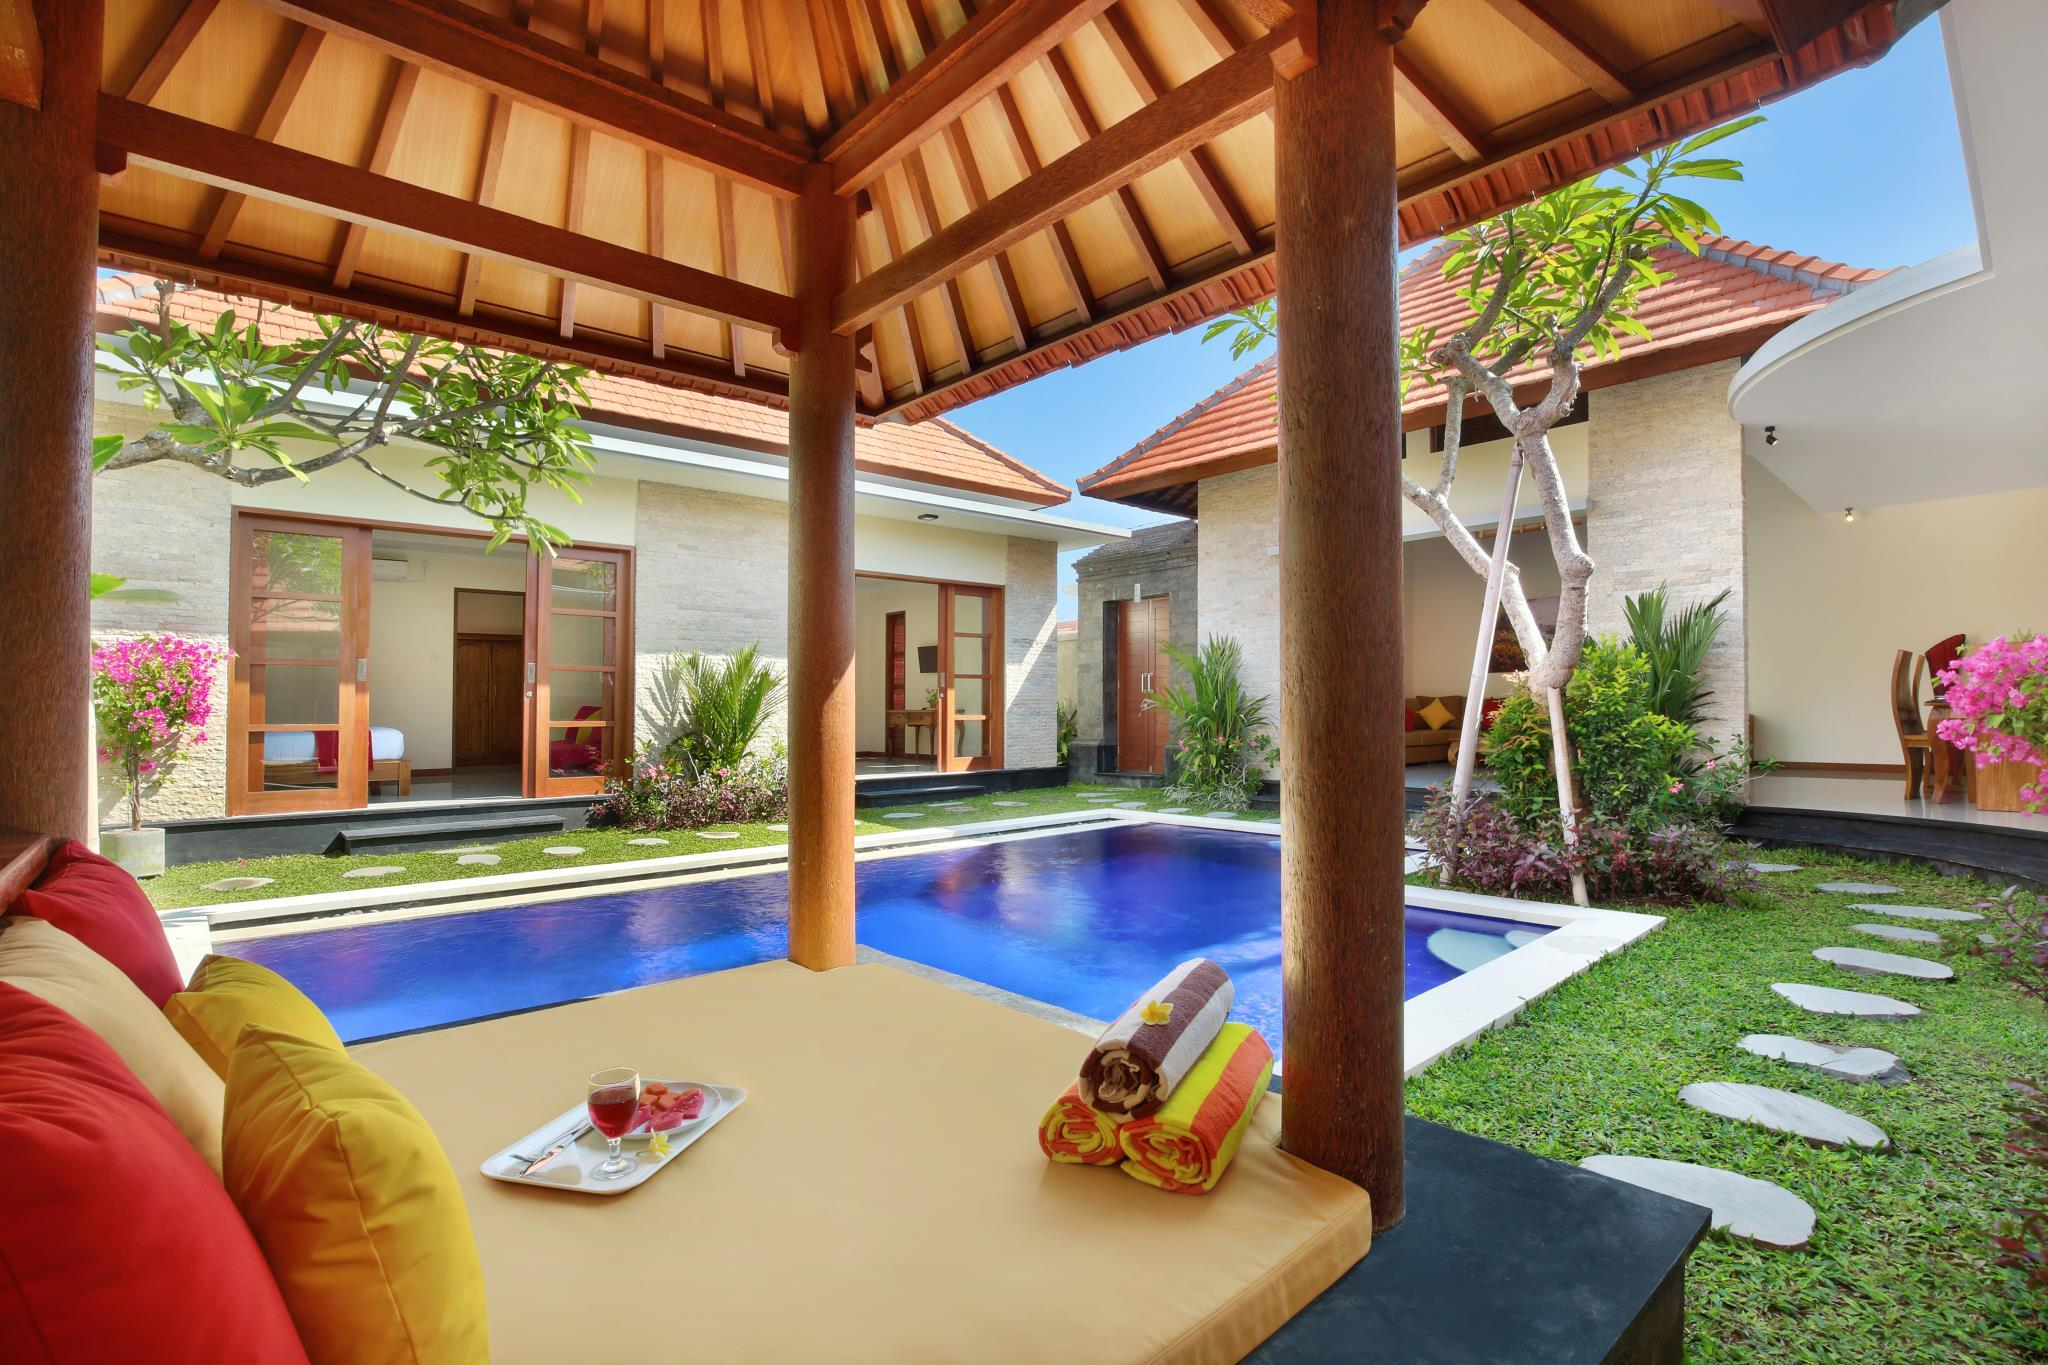 3br Villa Gupa In The Heart Of Seminyak Bali Bali Offers Free Cancellation 2021 Price Lists Reviews